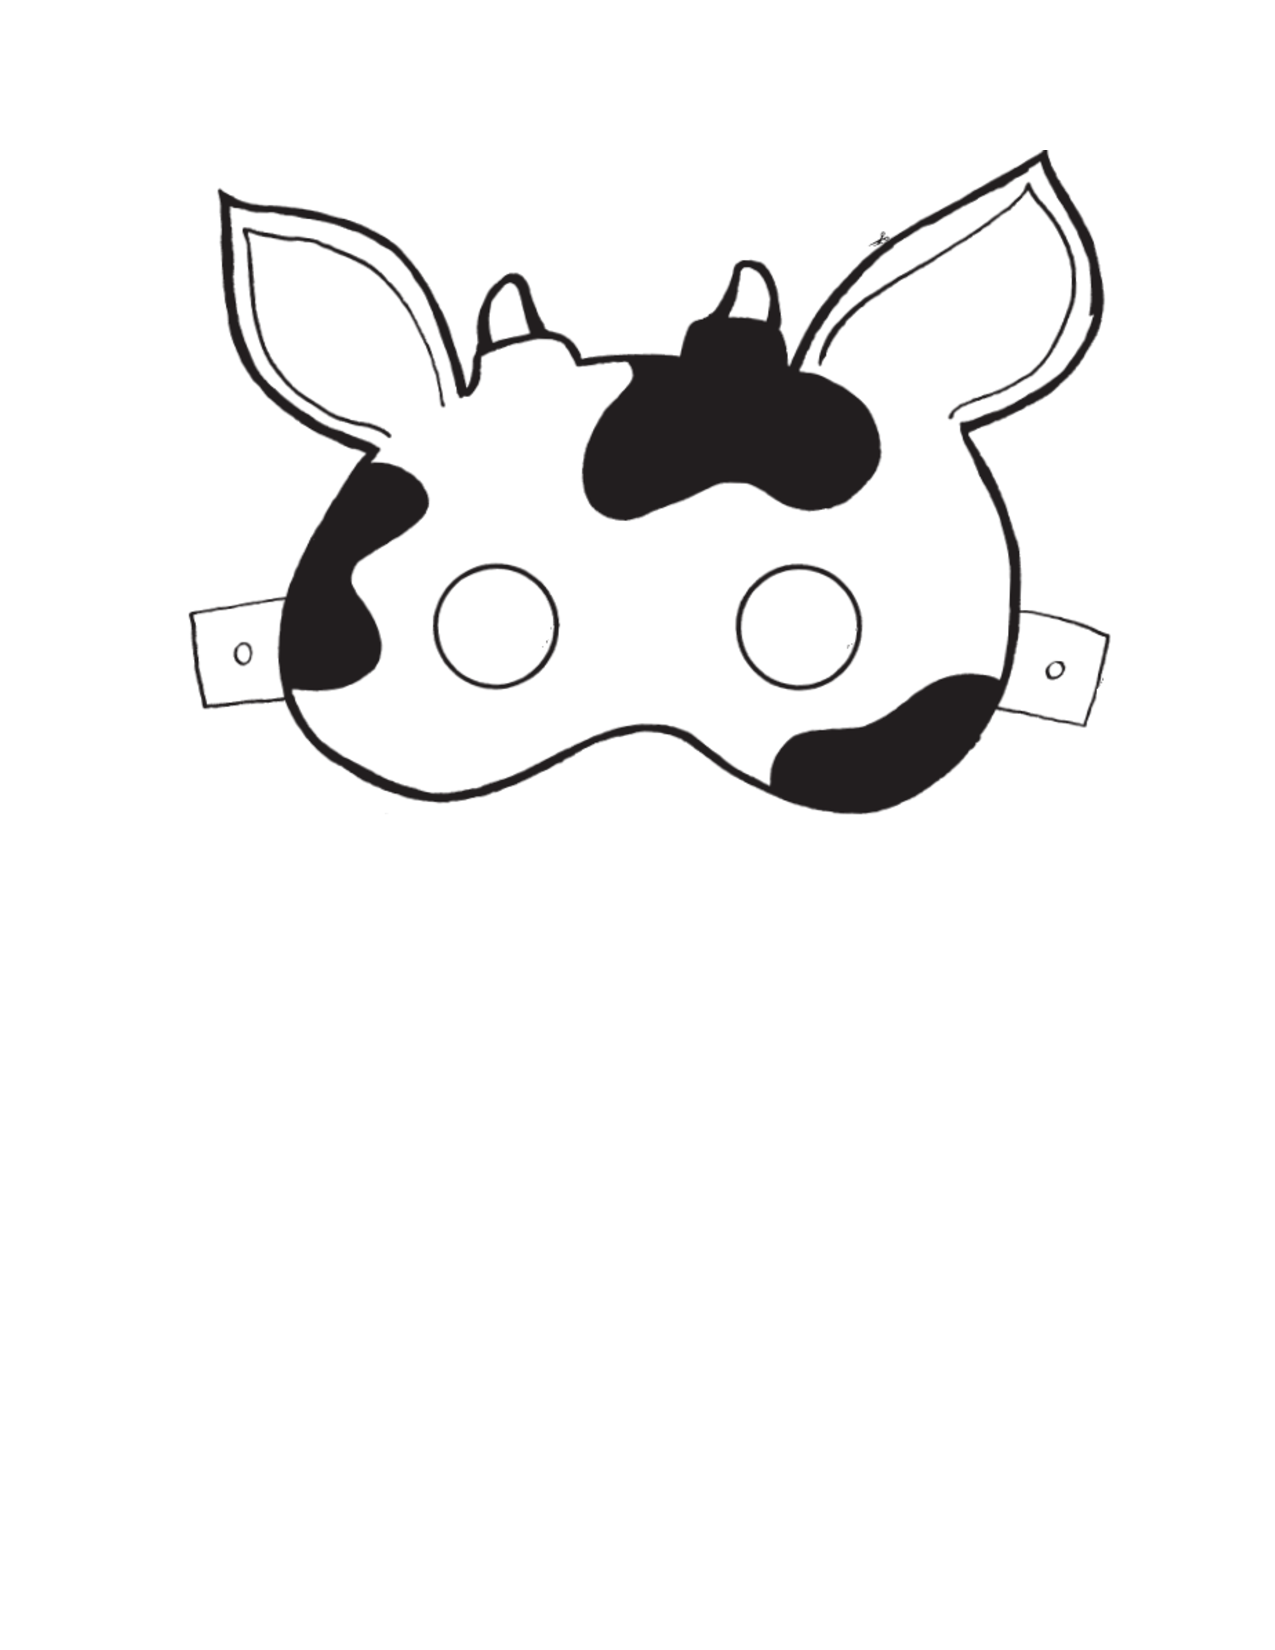 image regarding Free Printable Cow Mask identified as minor cow mask crafts Cow mask, Printable cow mask